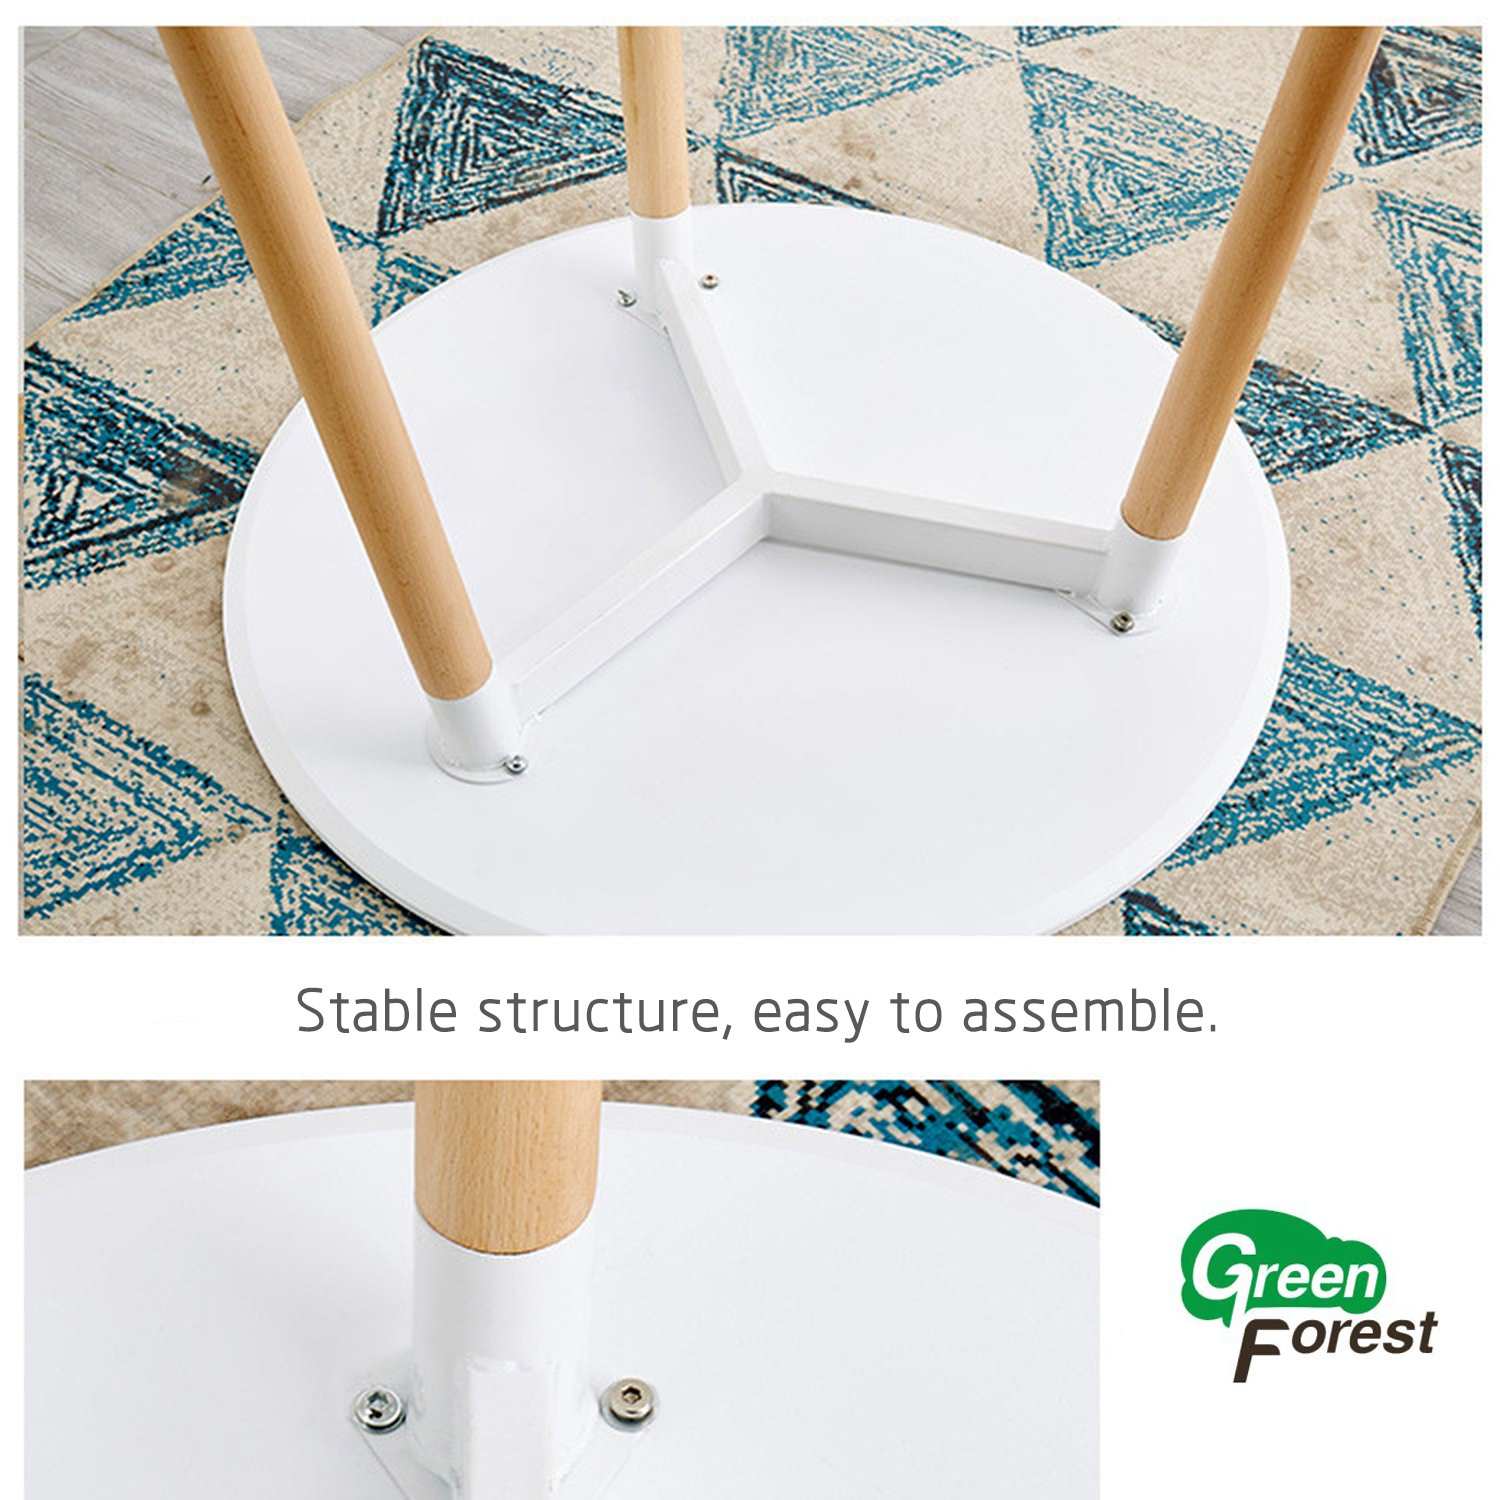 98cc56159db8 GreenForest Dining Table White Modern Round Table with Wood Legs for Kitchen  Living Room Leisure Coffee Table